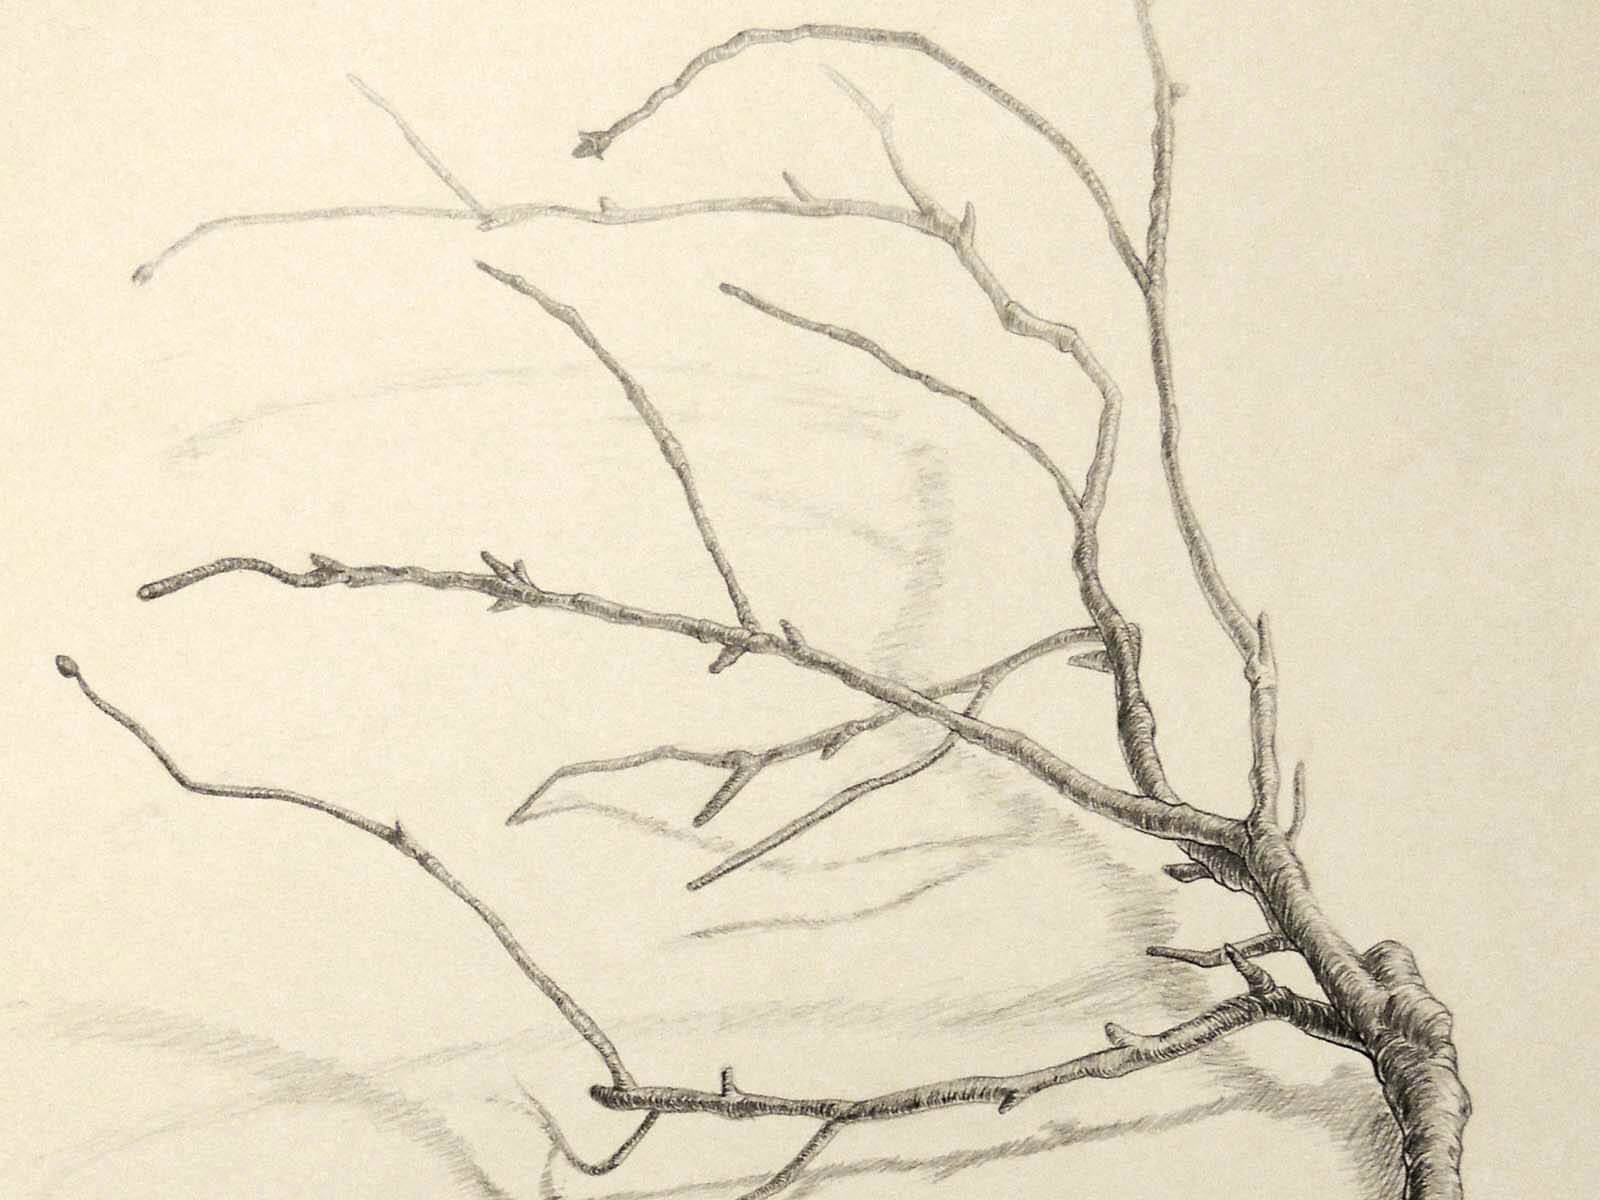 black and white still-life drawing of a tree branch